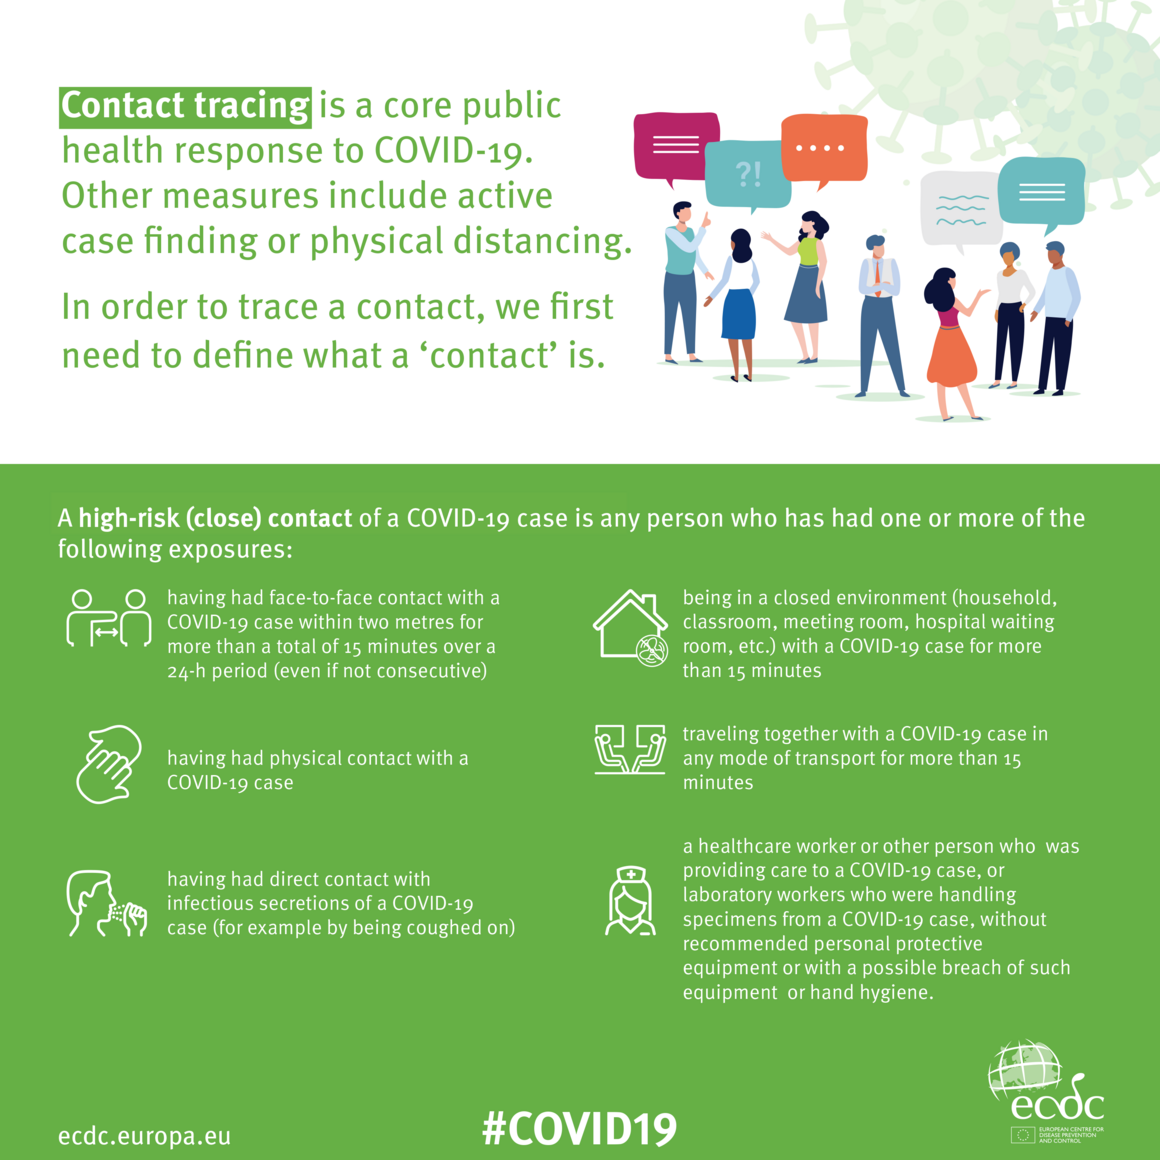 Infographic: COVID-19 contact tracing - high risk contact